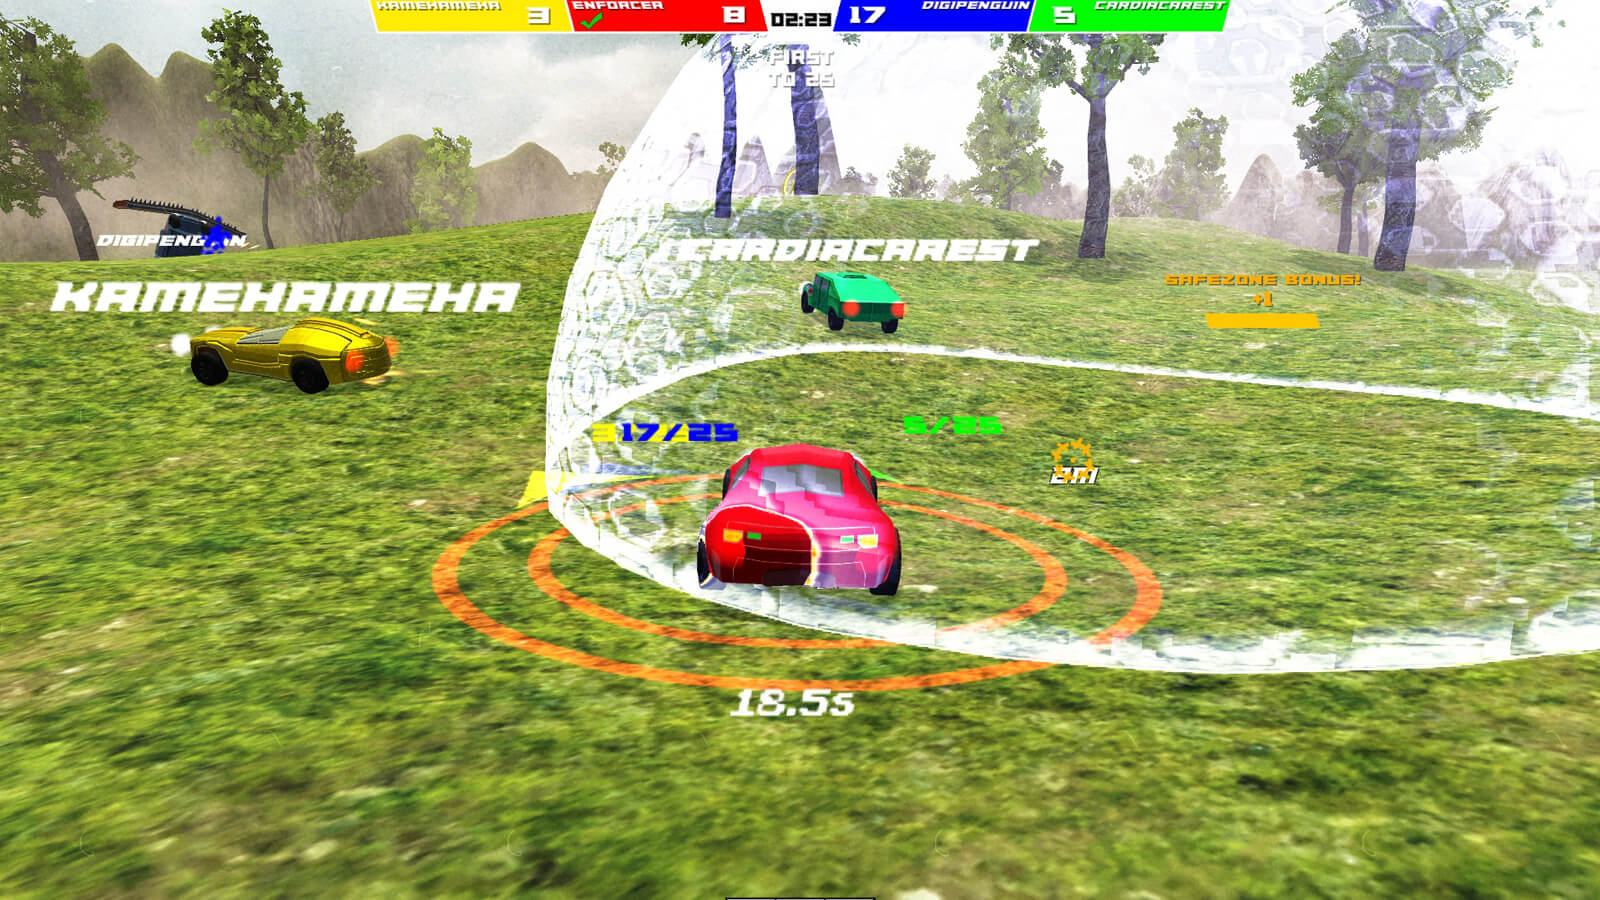 A red car enters a translucent bubble dome as yellow and green cars speed away